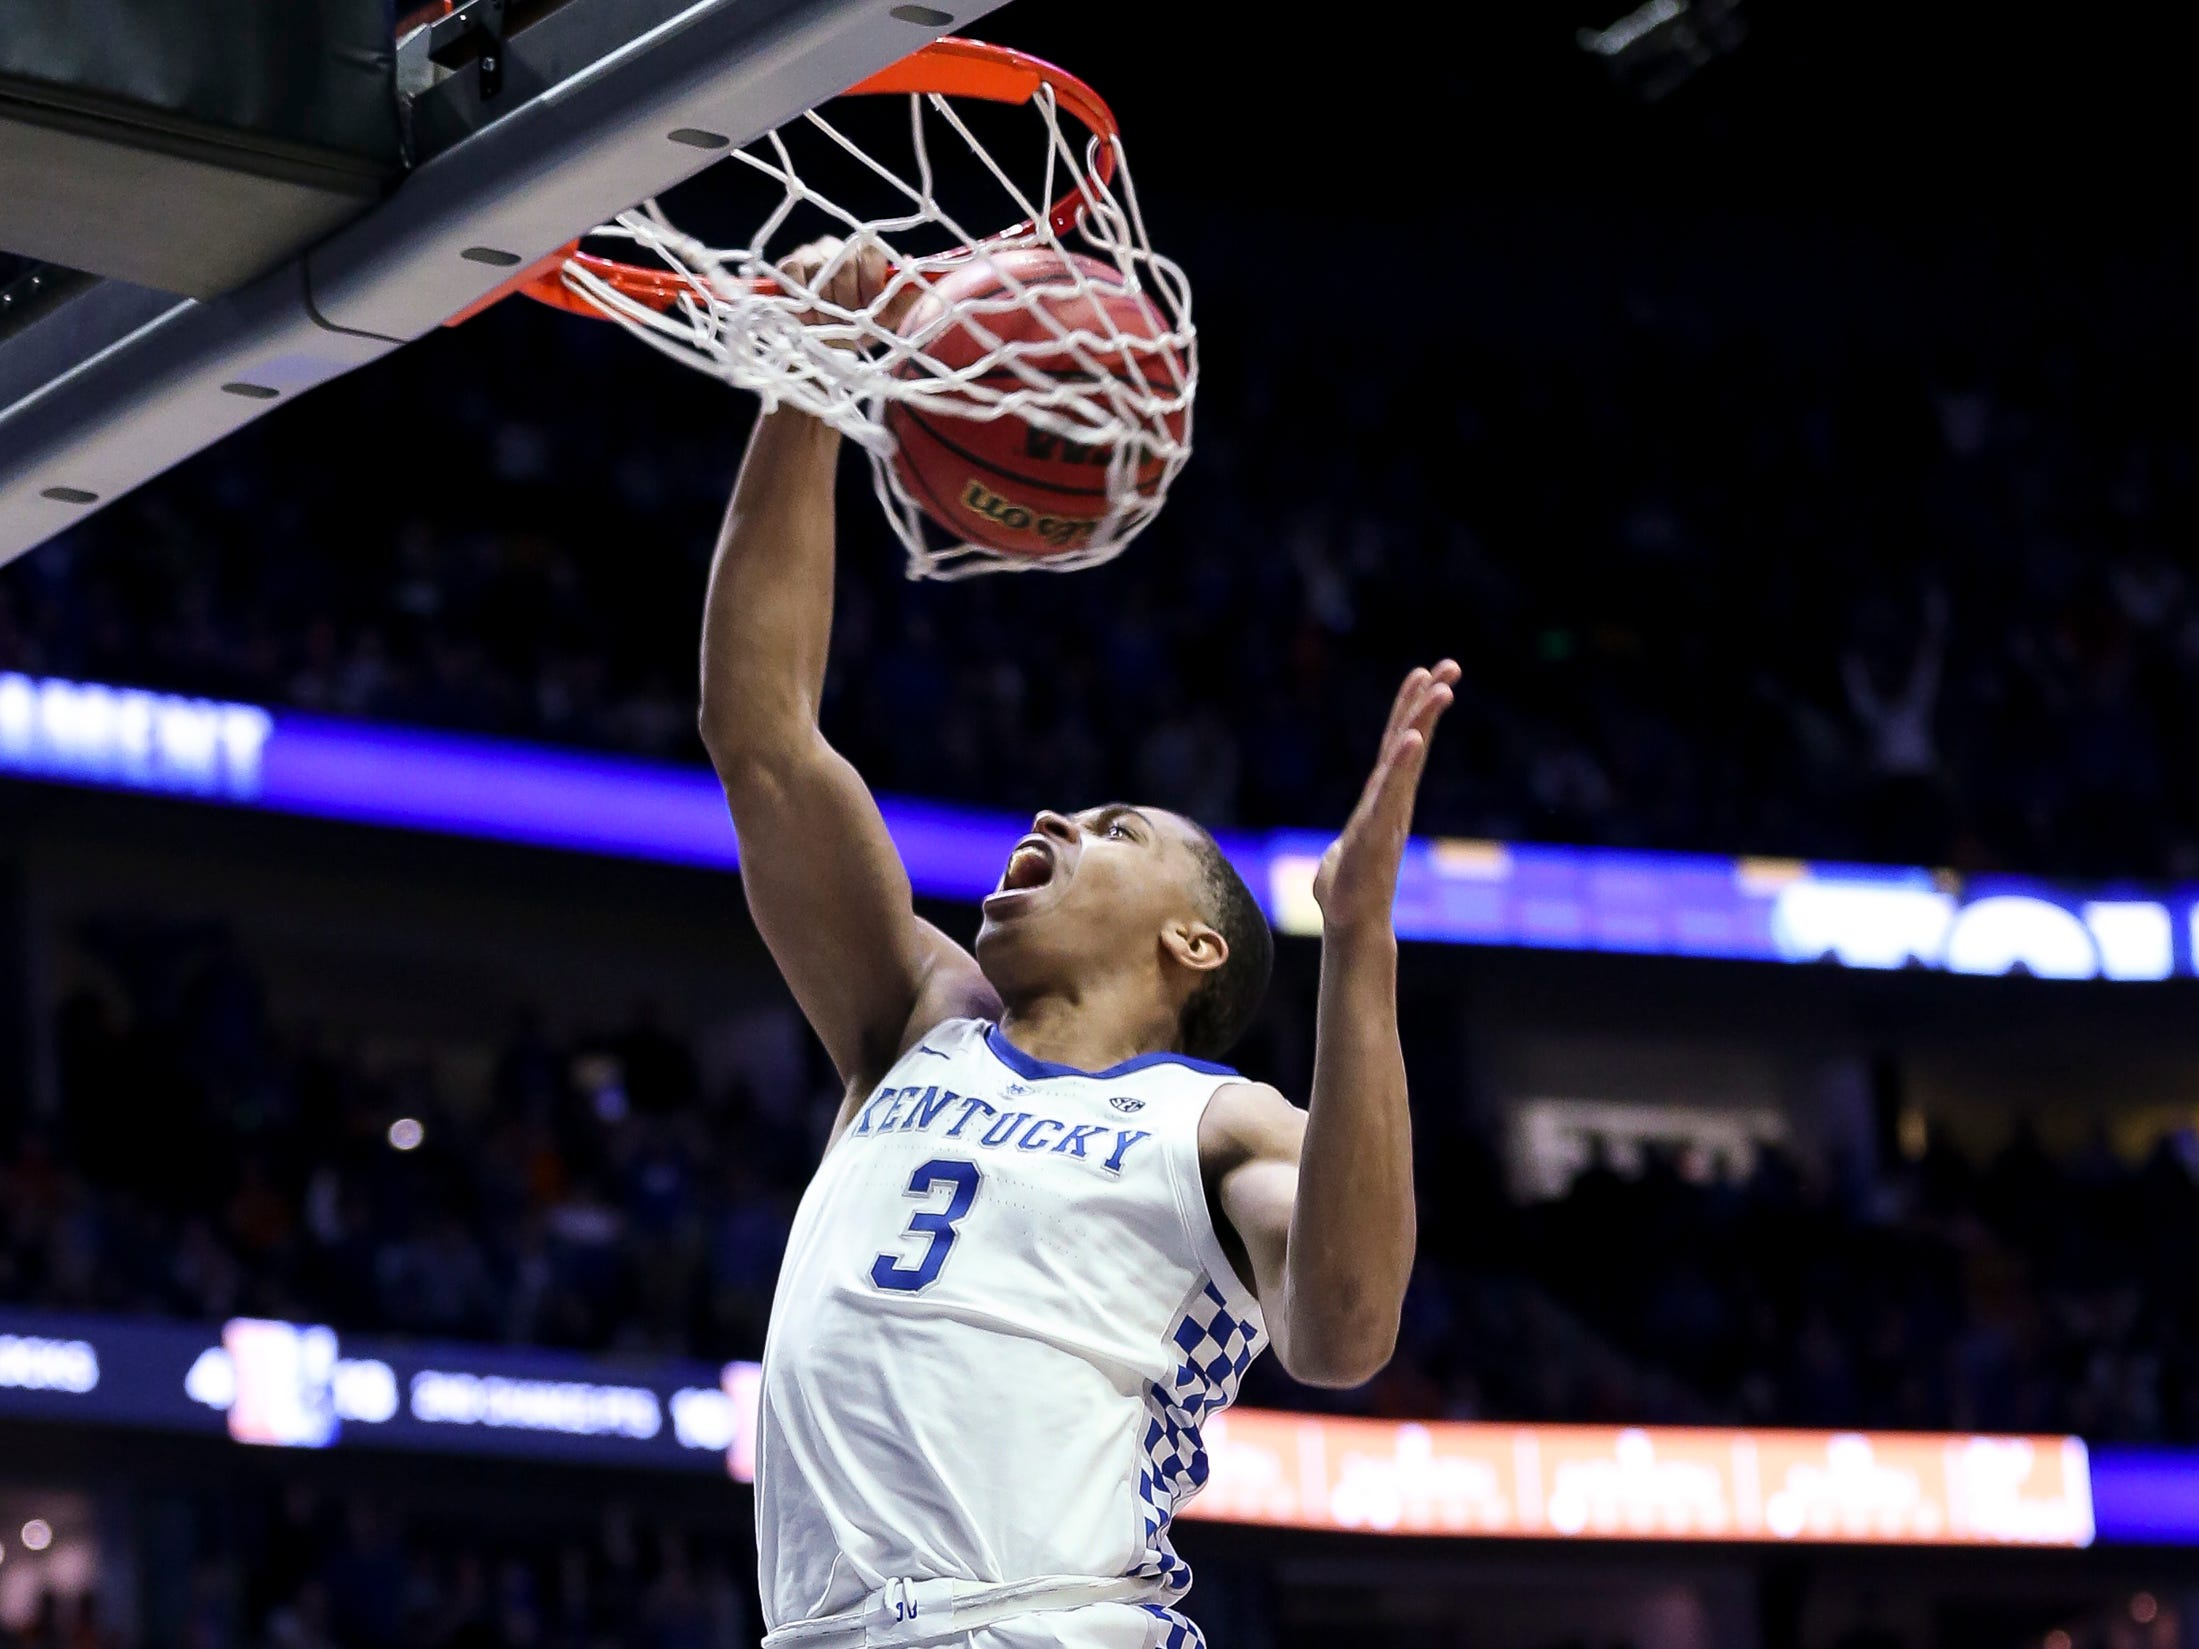 Kentucky guard Keldon Johnson (3) dunks against Tennessee during the second half of the SEC Men's Basketball Tournament semifinal game at Bridgestone Arena in Nashville, Tenn., Saturday, March 16, 2019.